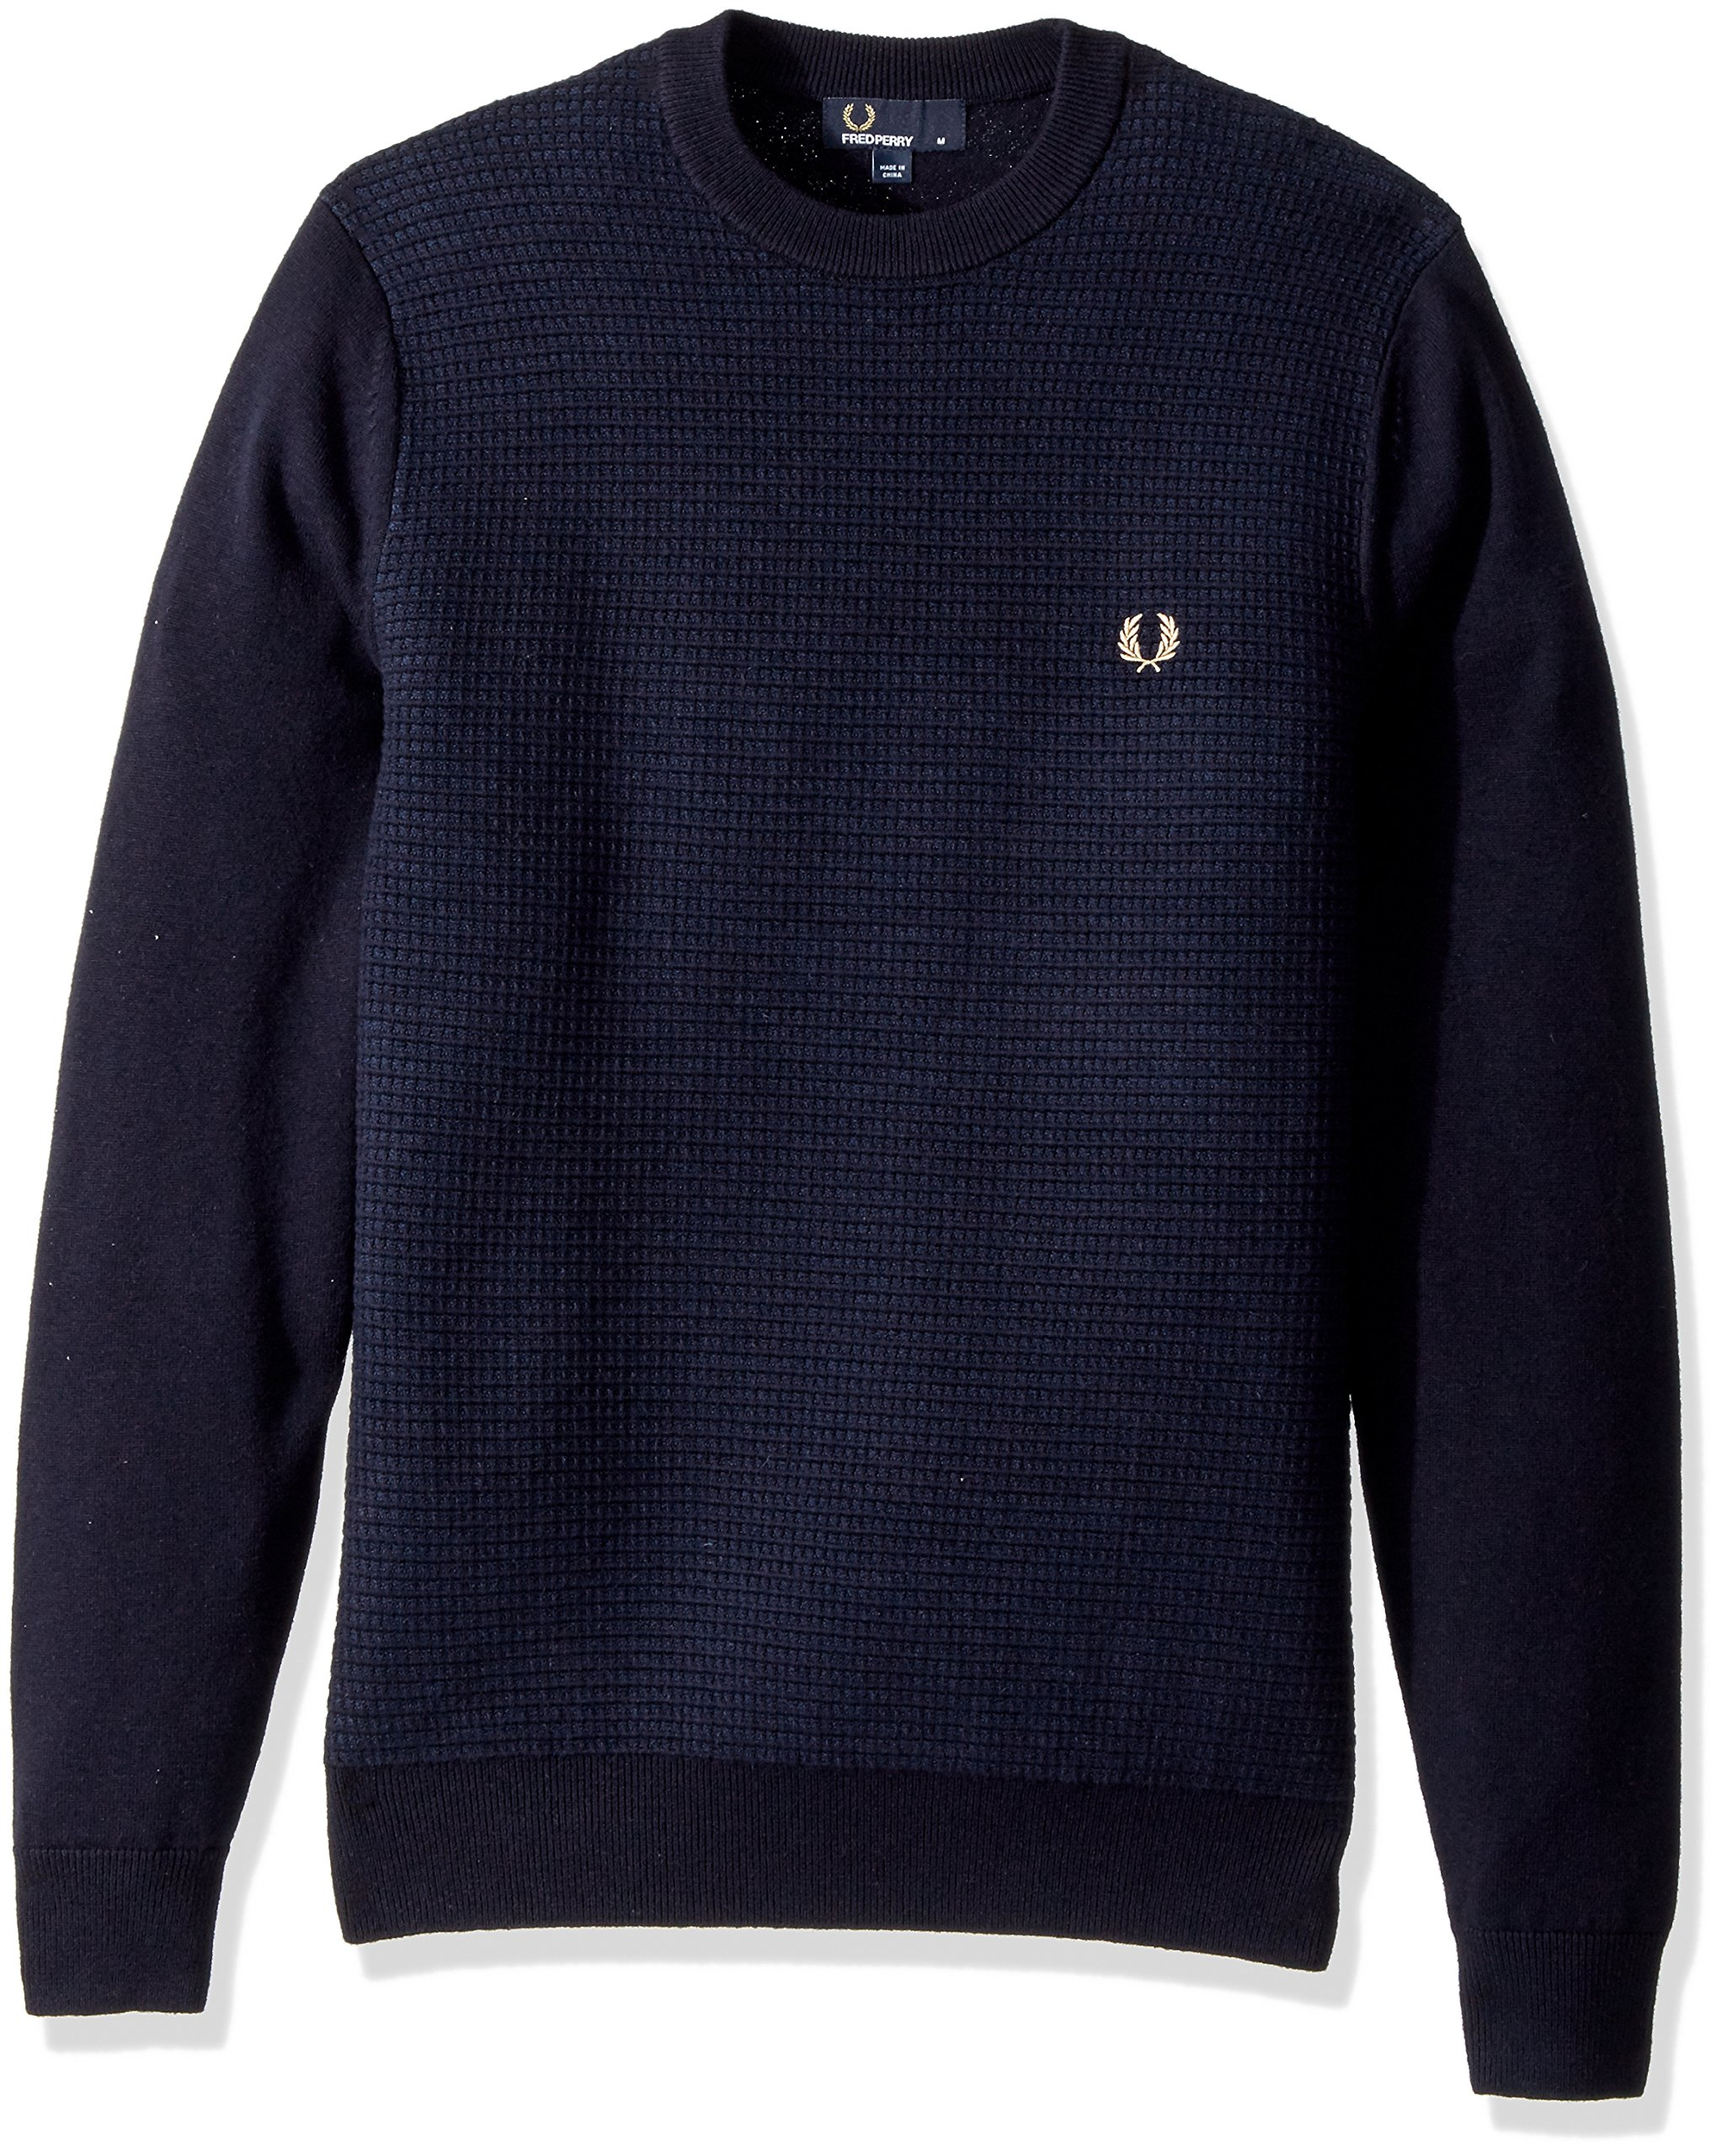 Fred Perry Men's Textured Crew Neck Jumper, Navy, X-Large